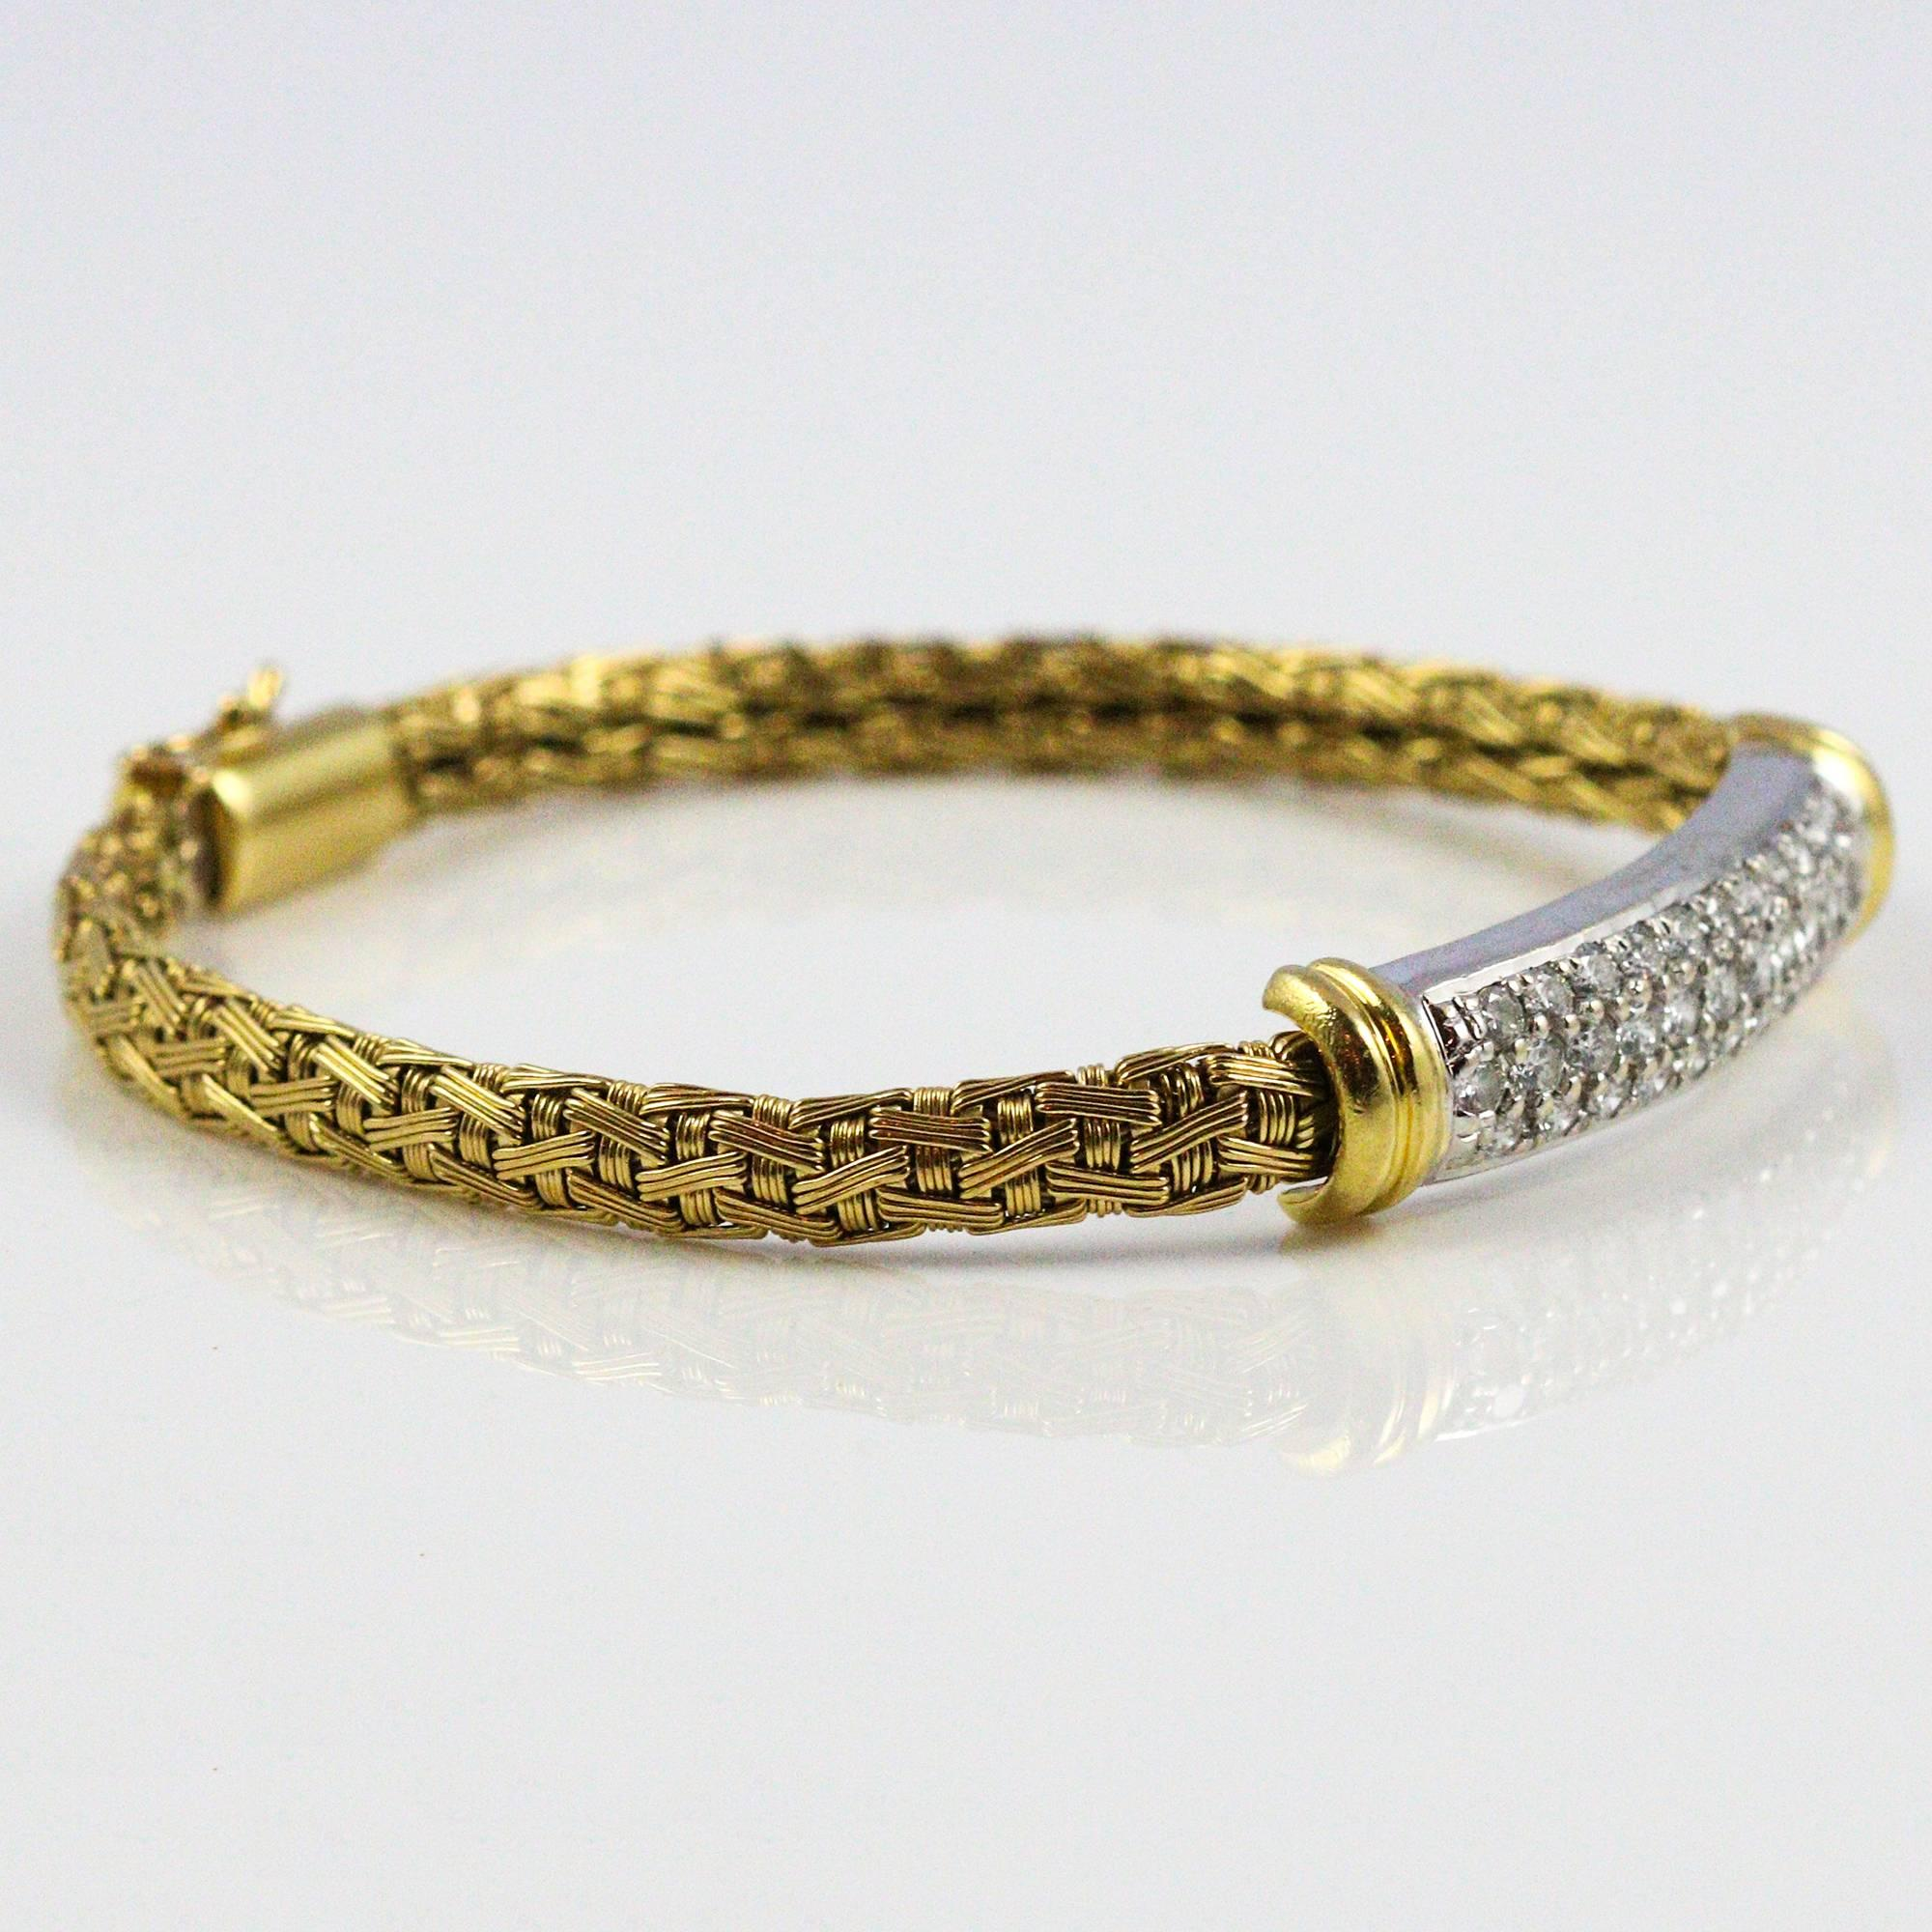 tennis pave gold bangles two diamond bangle greek key tone accent yellow plated bracelet style